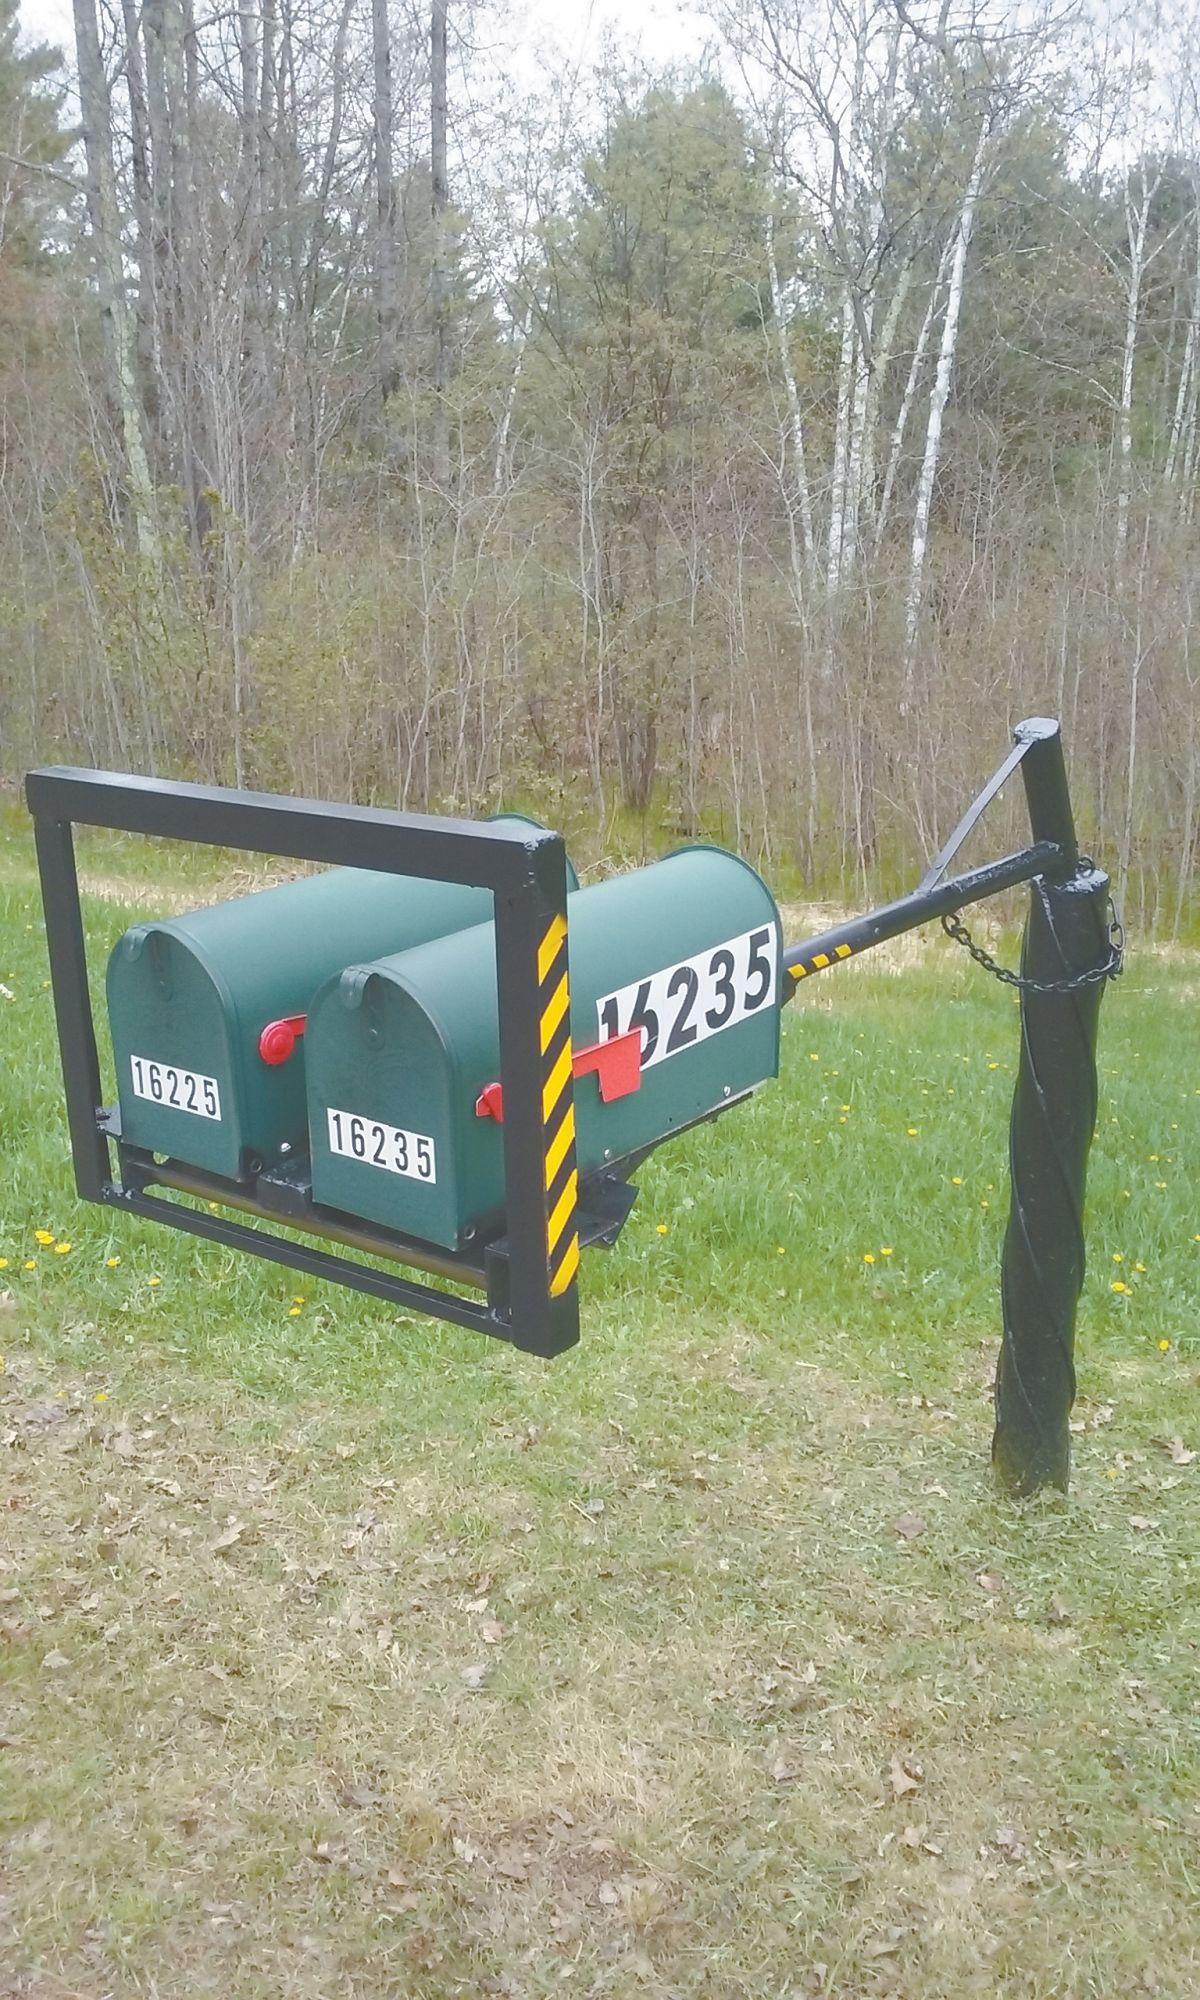 Farm Mailbox Ideas : mailbox, ideas, Magazine, Stories, About, Made-It-Myself, Inventions,, Farming, Gardening, Tips,, Time-saving, Tricks, Hacks,, Projects,, Boosting, Income,